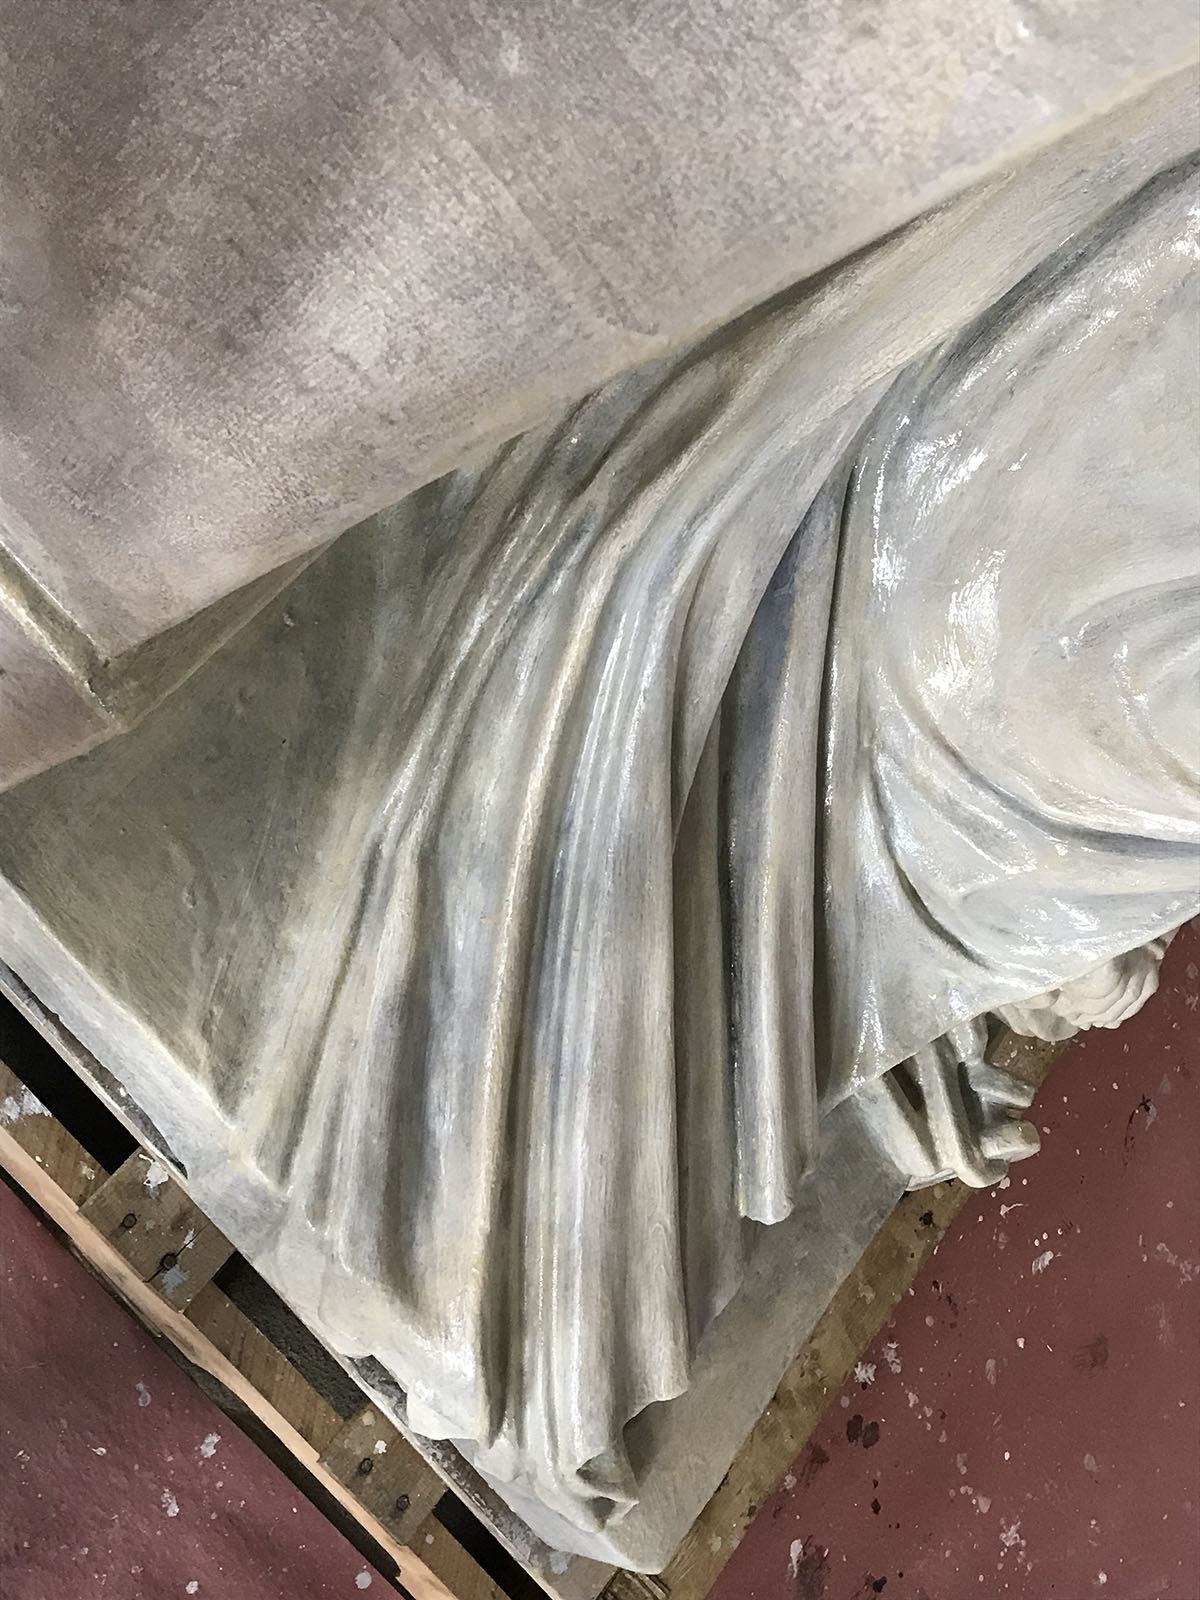 The statue's folds are accentuated with Rosco Off-Broadway paint and Premiere Clear Gloss.